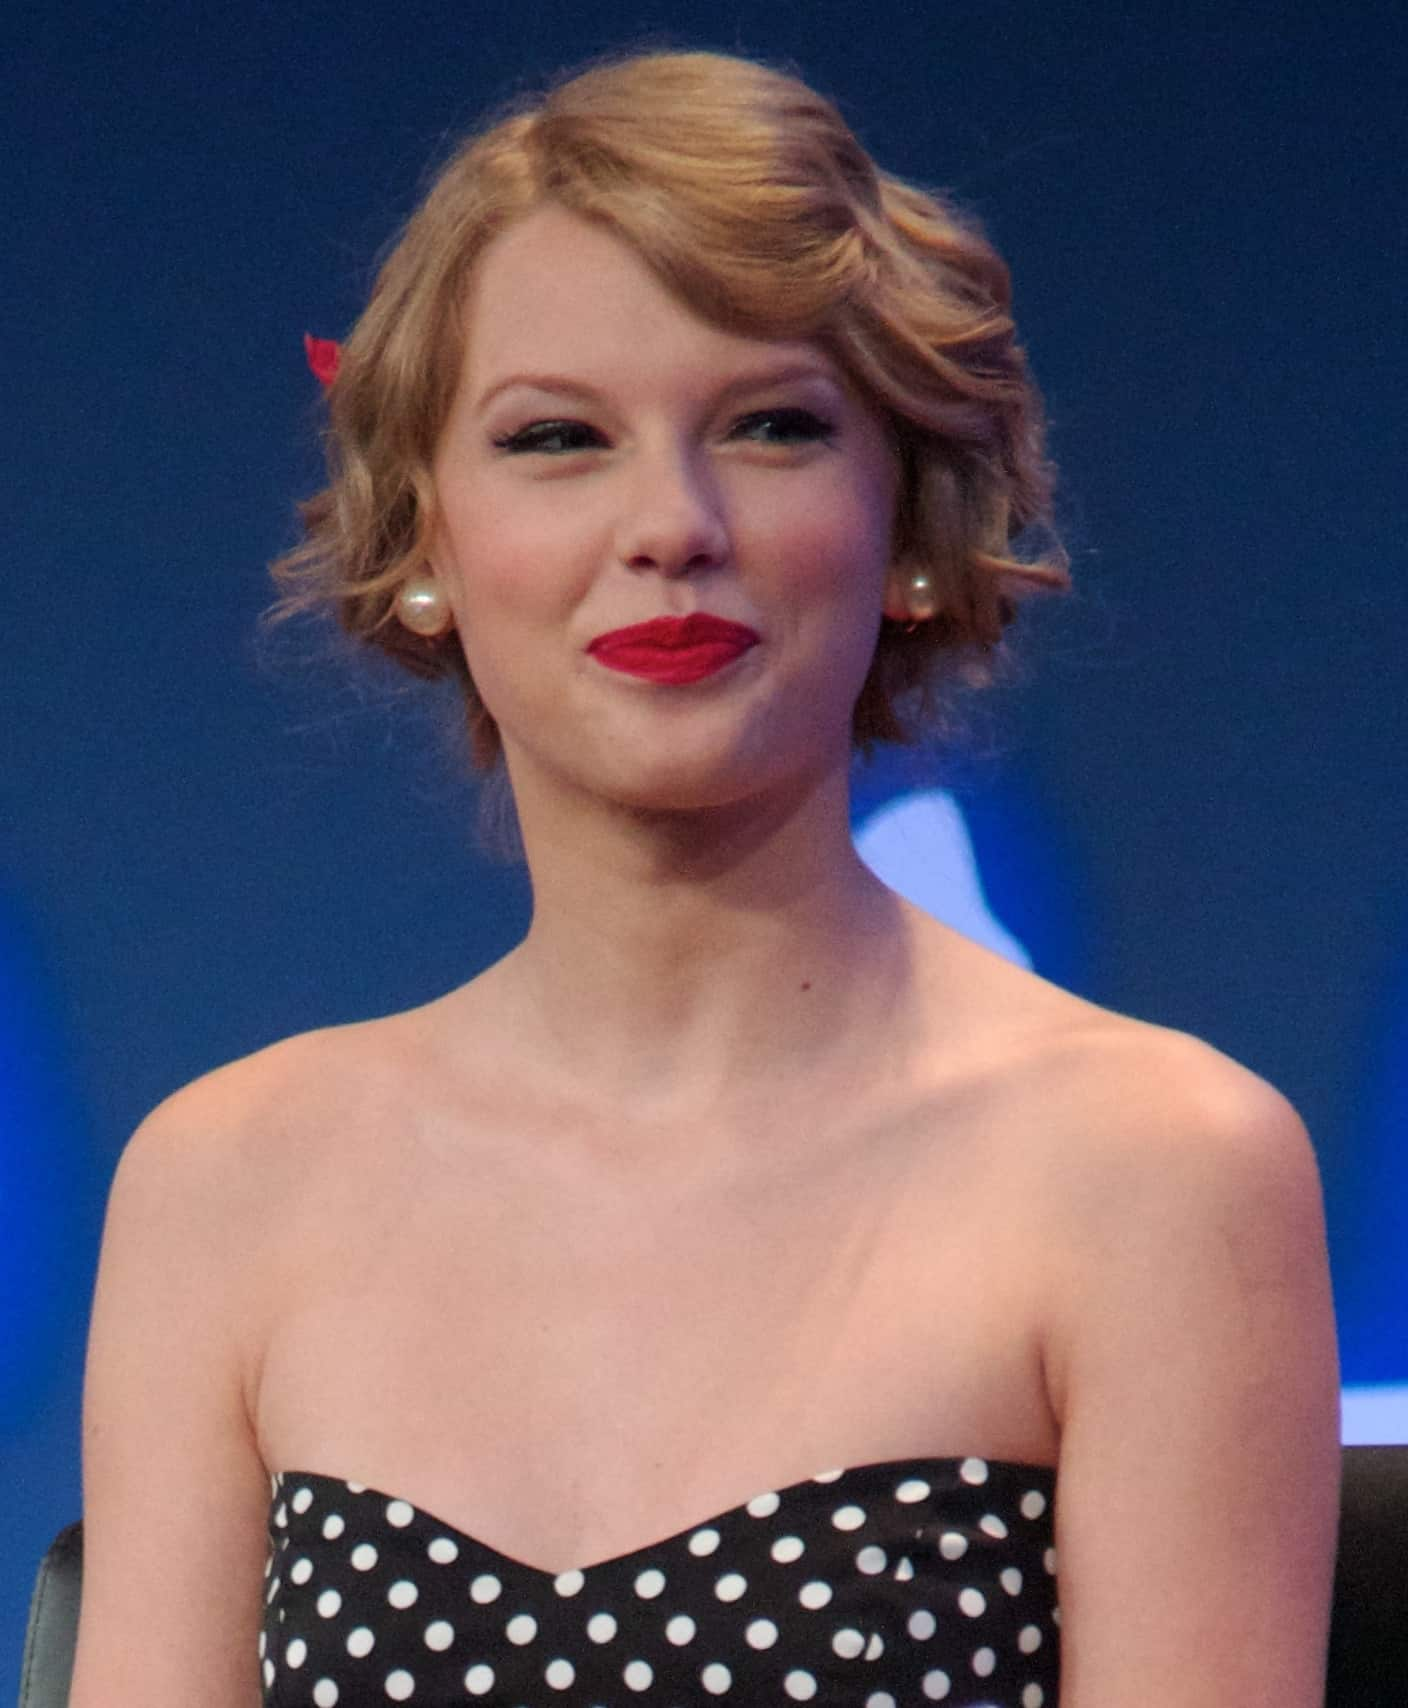 Young Taylor Swift in 2011